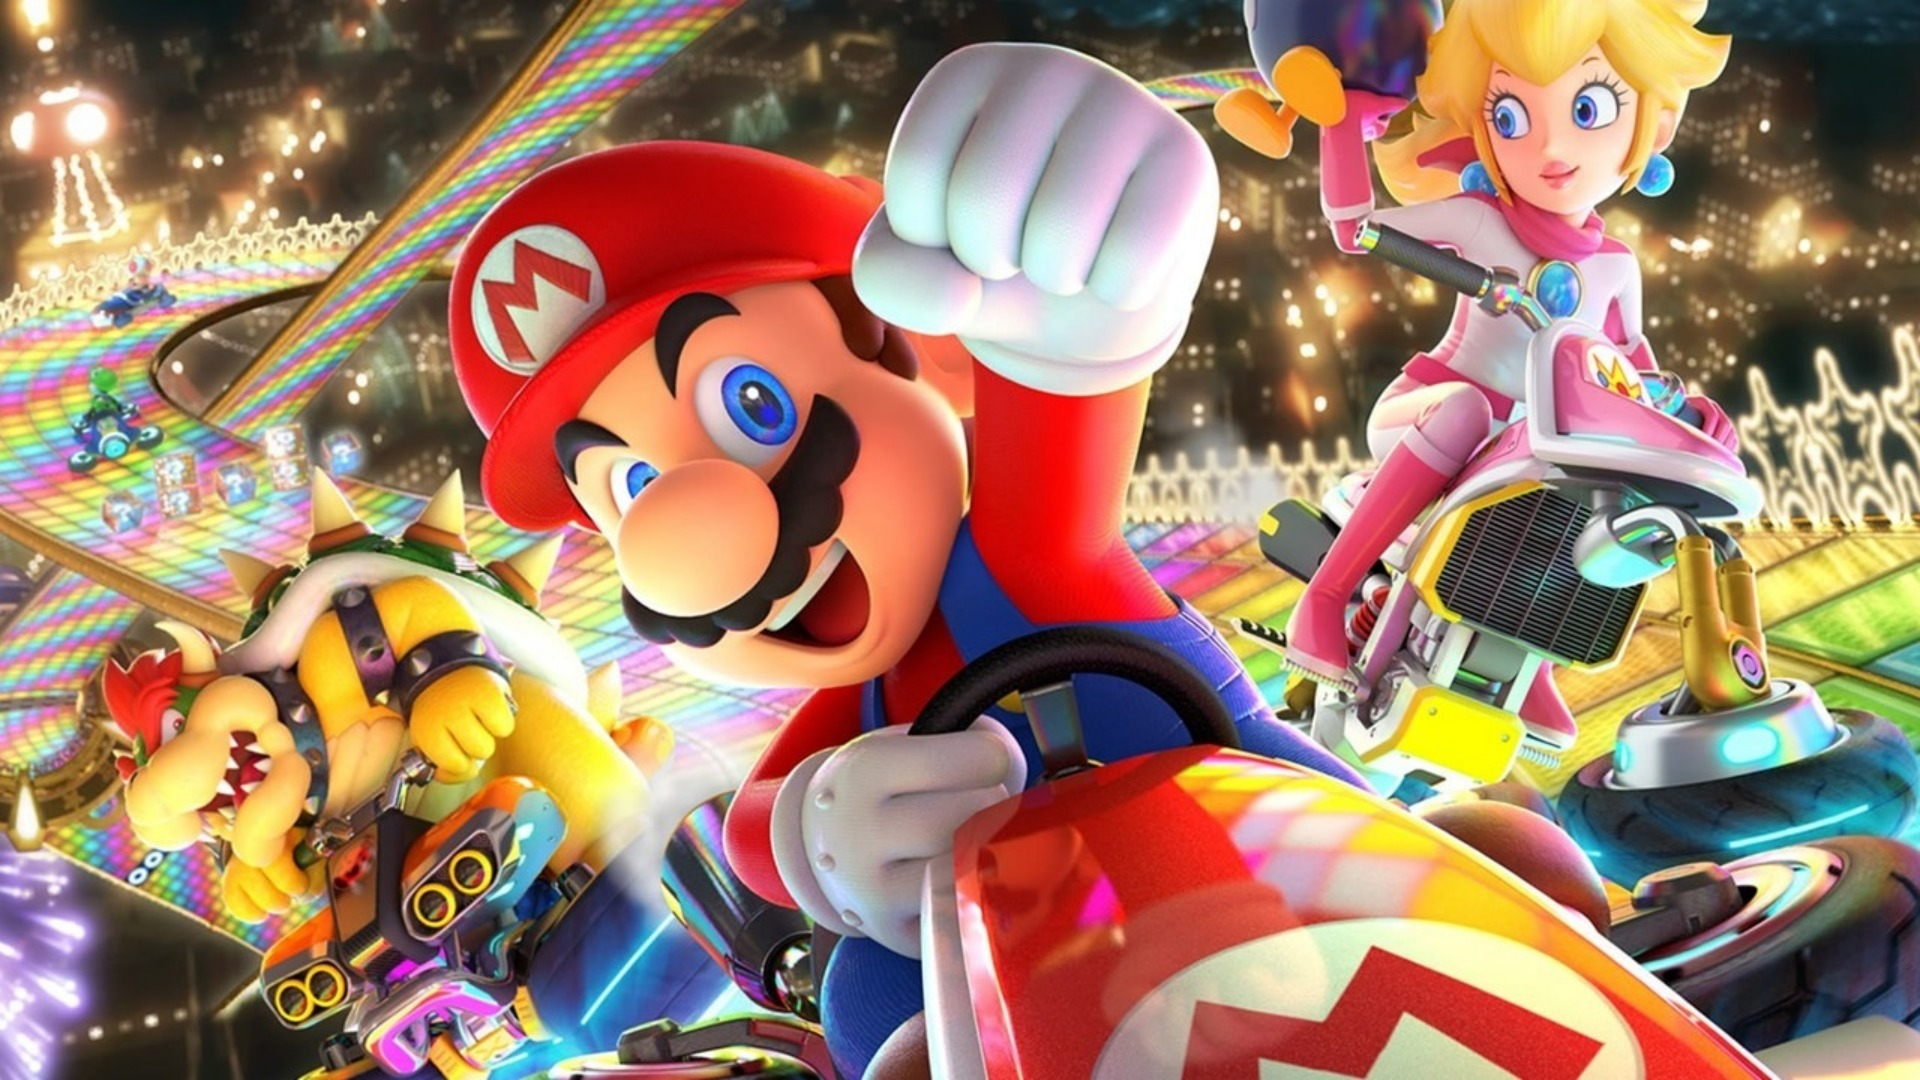 Mario Kart Tour racks up 90m downloads in its first week